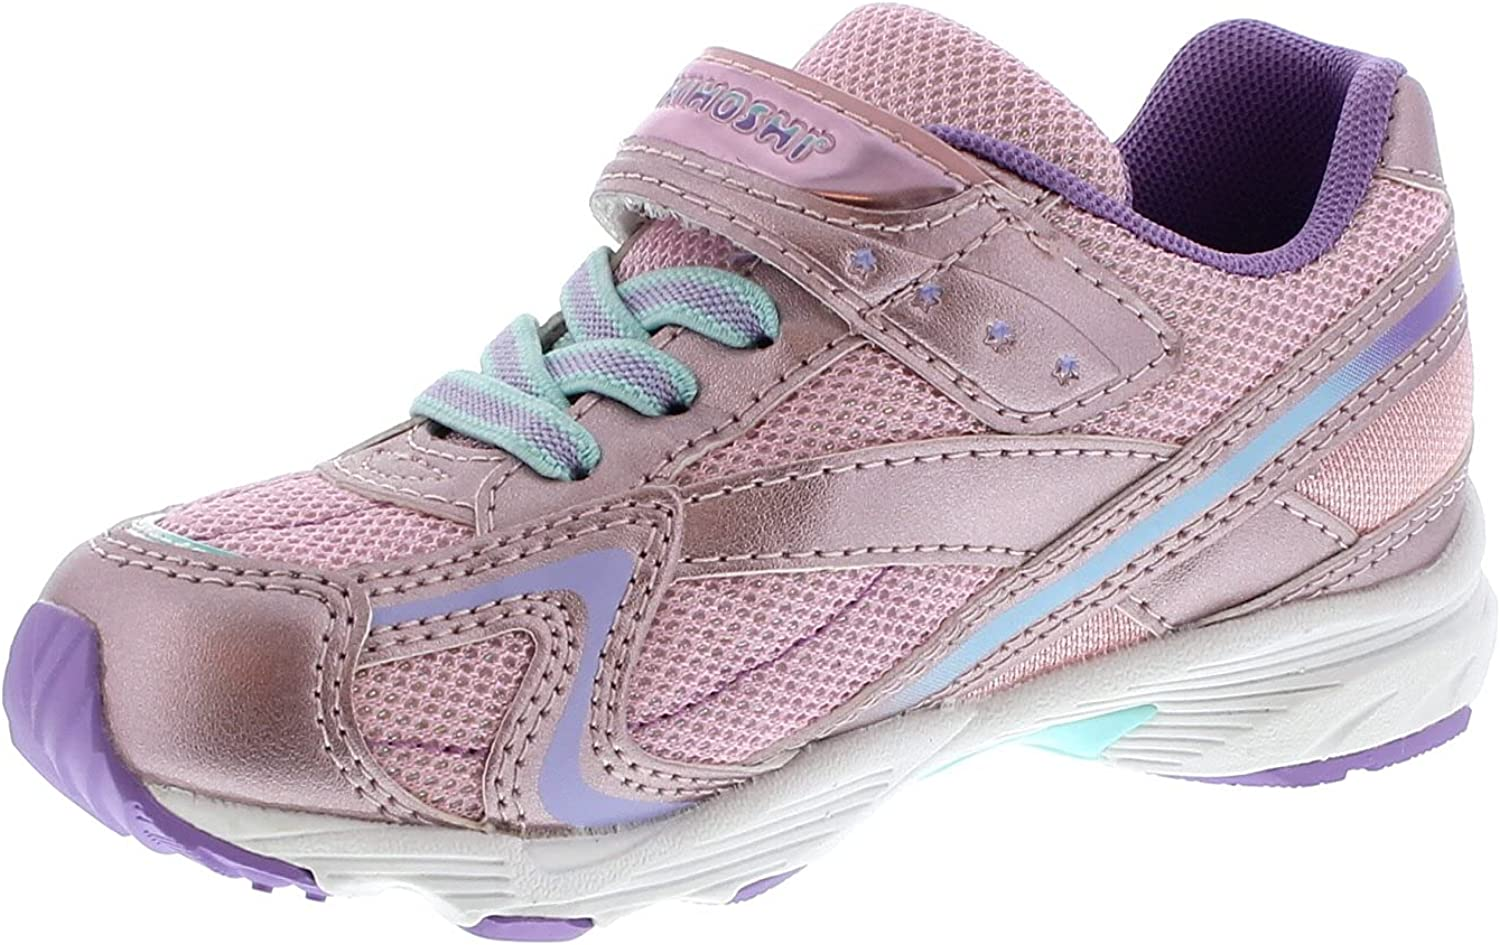 TSUKIHOSHI 3537 Glitz Strap-Closure Machine-Washable Child Sneaker Shoe with Wide Toe Box and Slip-Resistant, Non-Marking Outsole - Rose/Lavender, 1 Little Kid (4-8 Years)